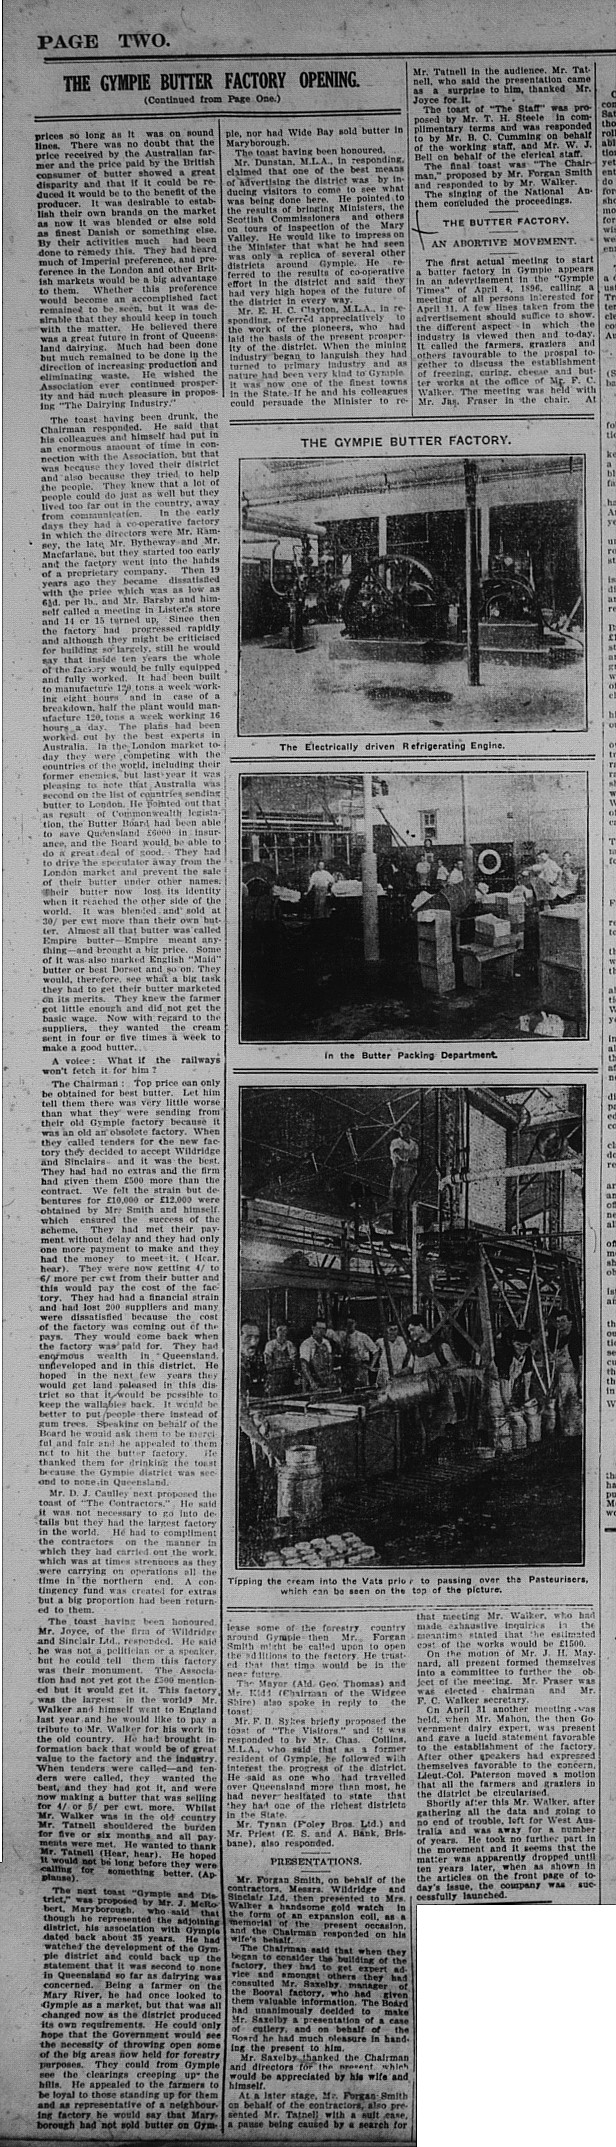 GT Saturday, September 26, 1925 p.2 Opening of World's Biggest Butter Factory